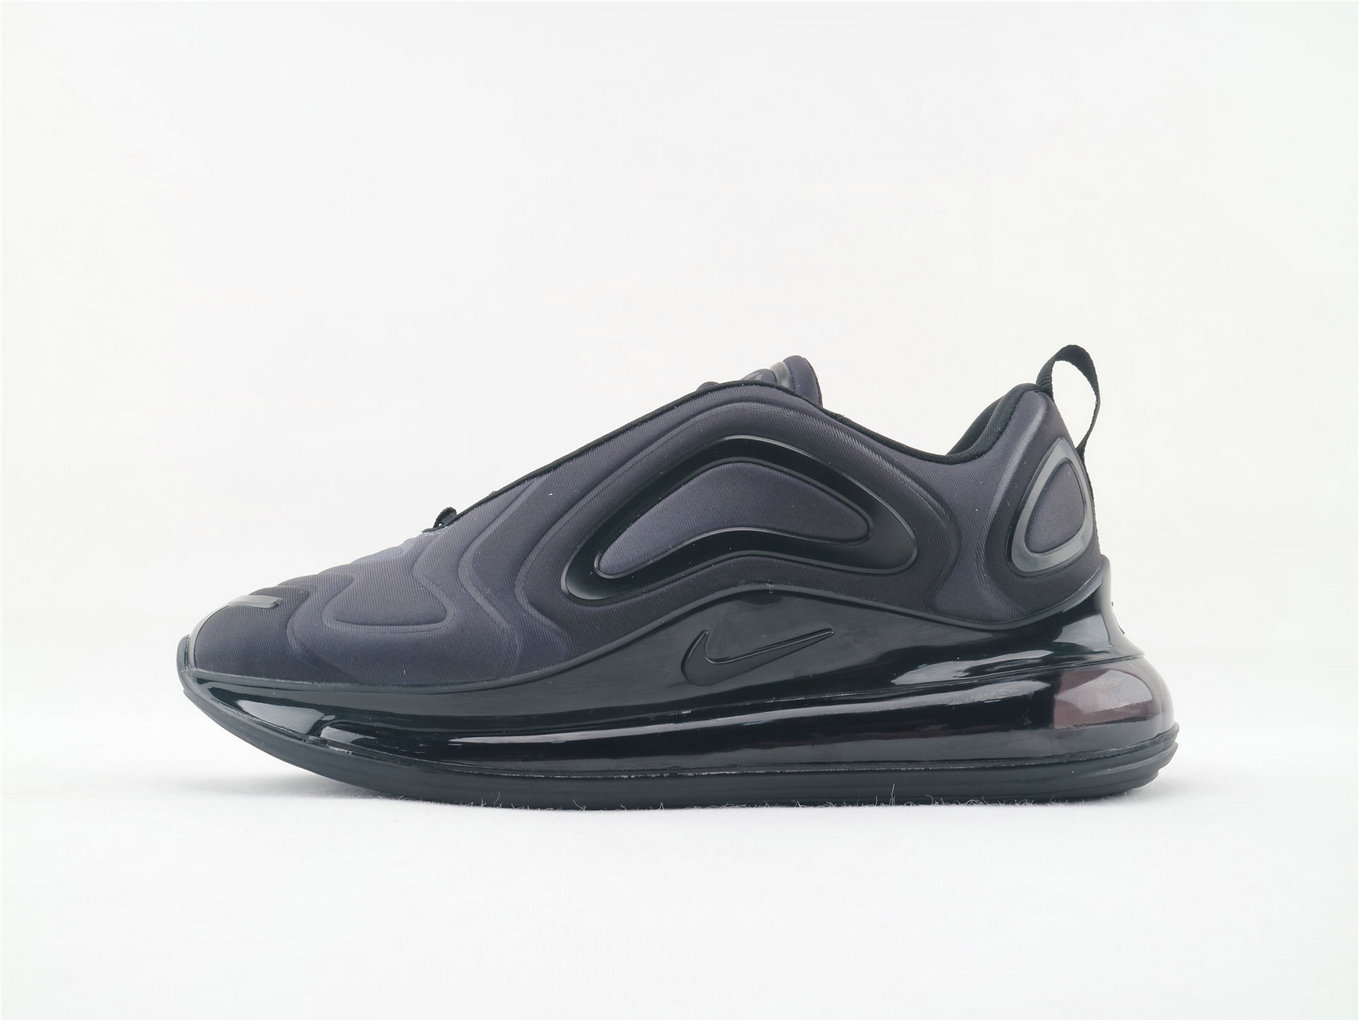 Where To Buy Womens Nike Sportwear Air Max 720 All Black-Anthracite AO2924-004